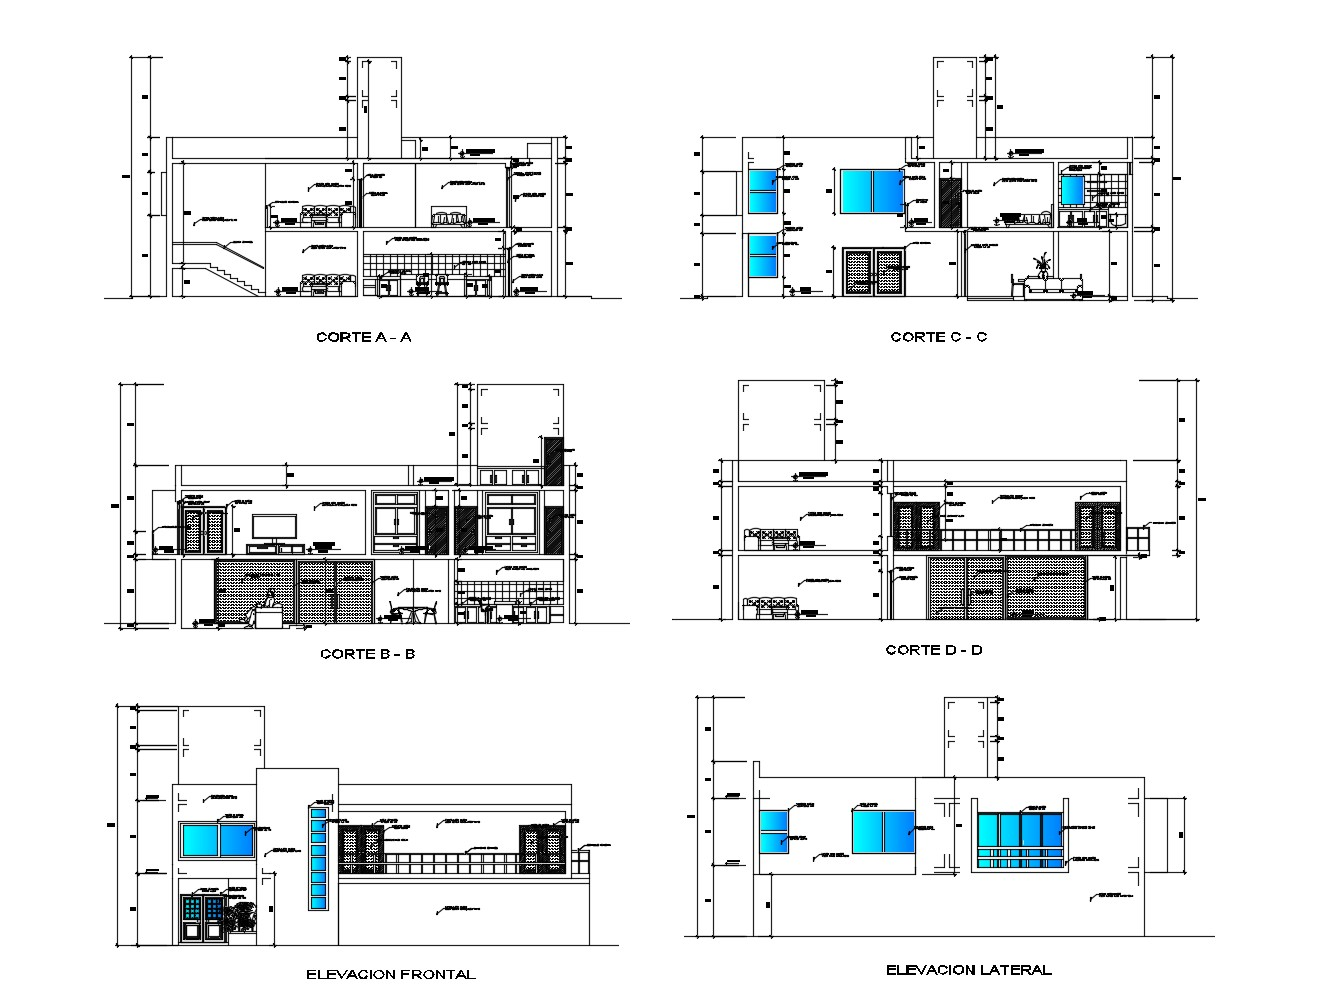 Autocad drawing of the bungalow with elevation and section ... on house styles, house design, house painting, house maps, house exterior, house rendering, house framing, house layout, house elevations, house foundation, house building, house types, house construction, house drawings, house clip art, house plants, house models, house blueprints, house roof, house structure,